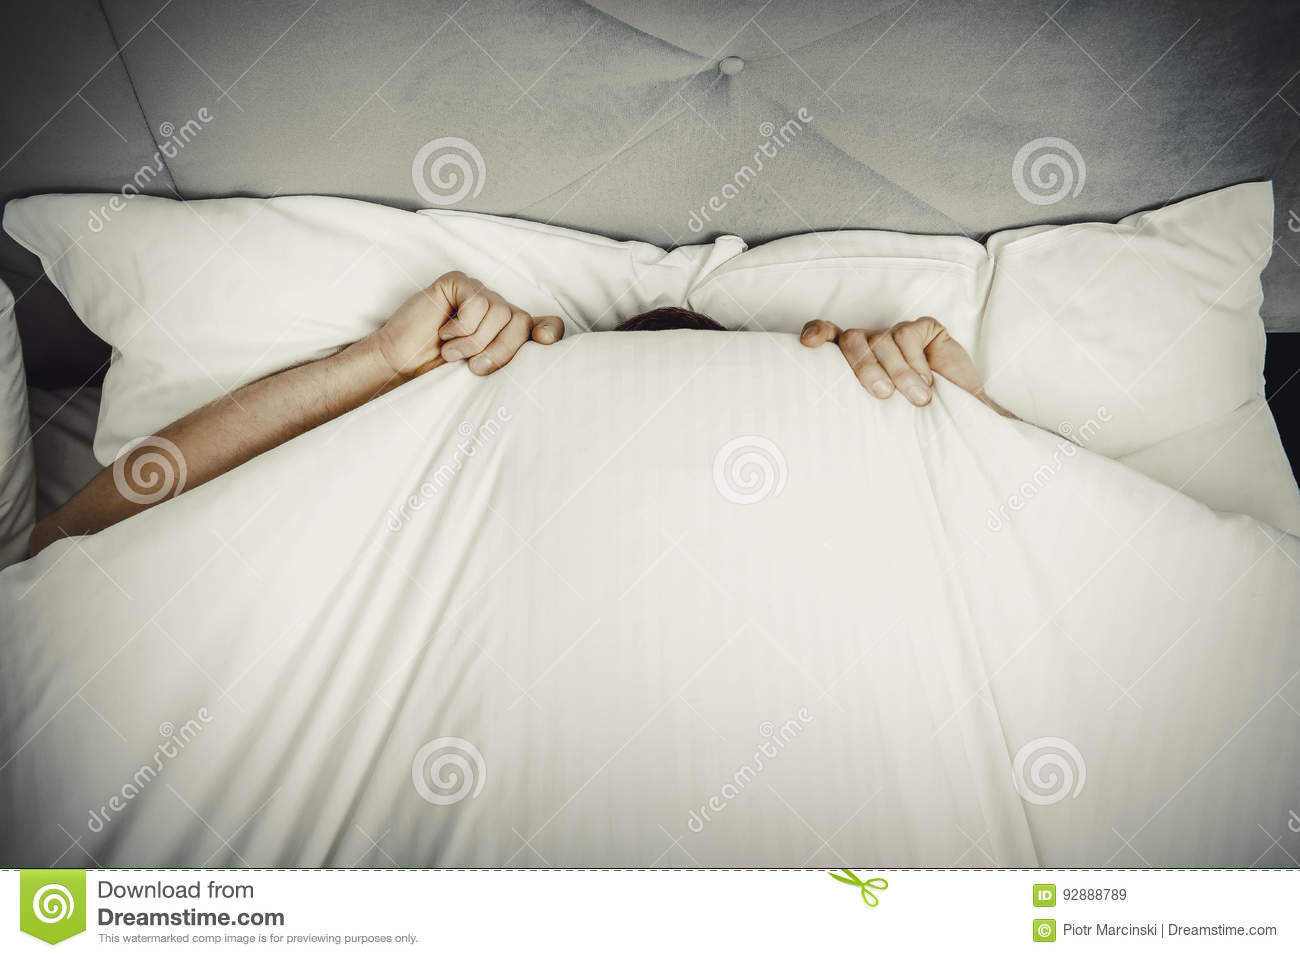 Captivating Download Man Hiding In Bed Under Sheets. Stock Image   Image Of Hide,  Looking